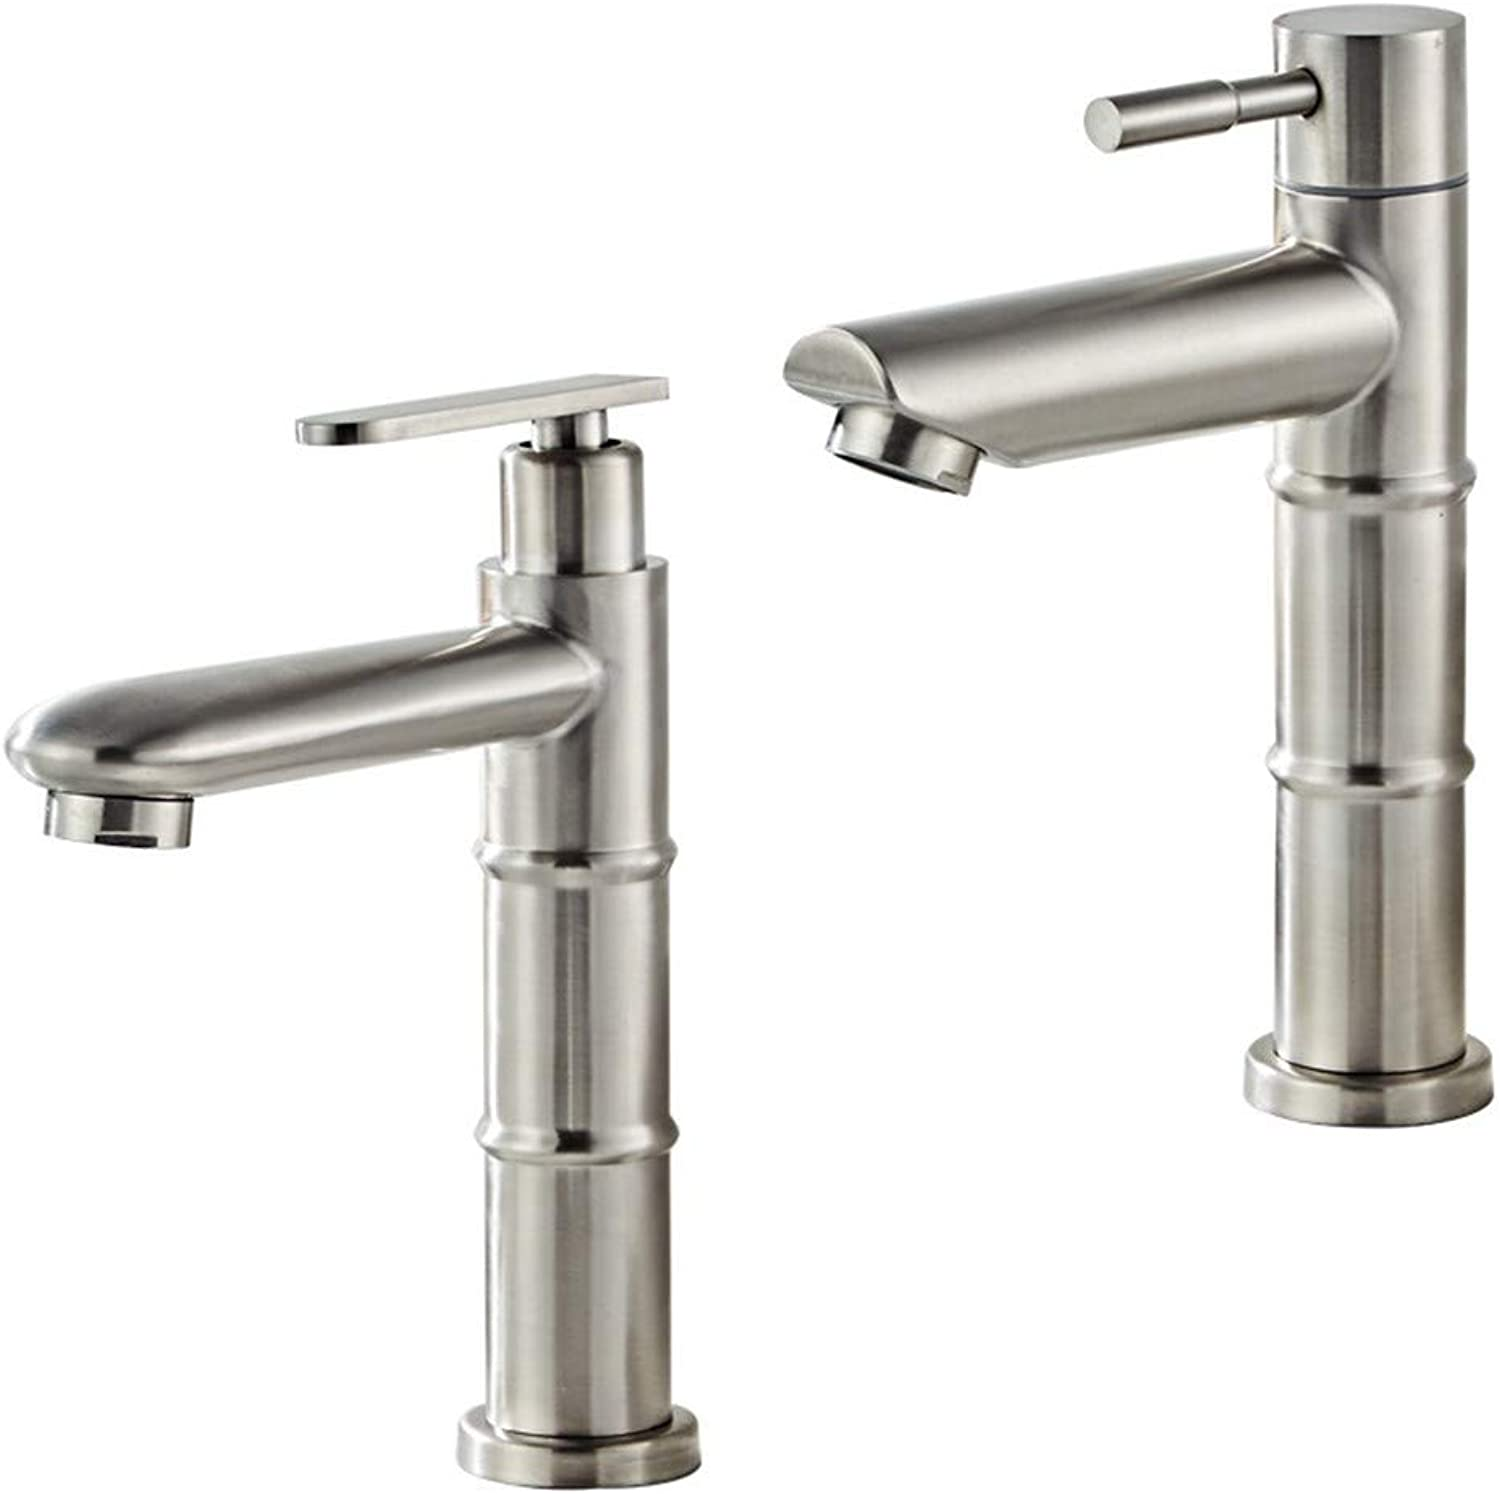 Zhcmy ?304 Stainless Steel Single Cold Bamboo Faucet Bathroom Basin Faucet